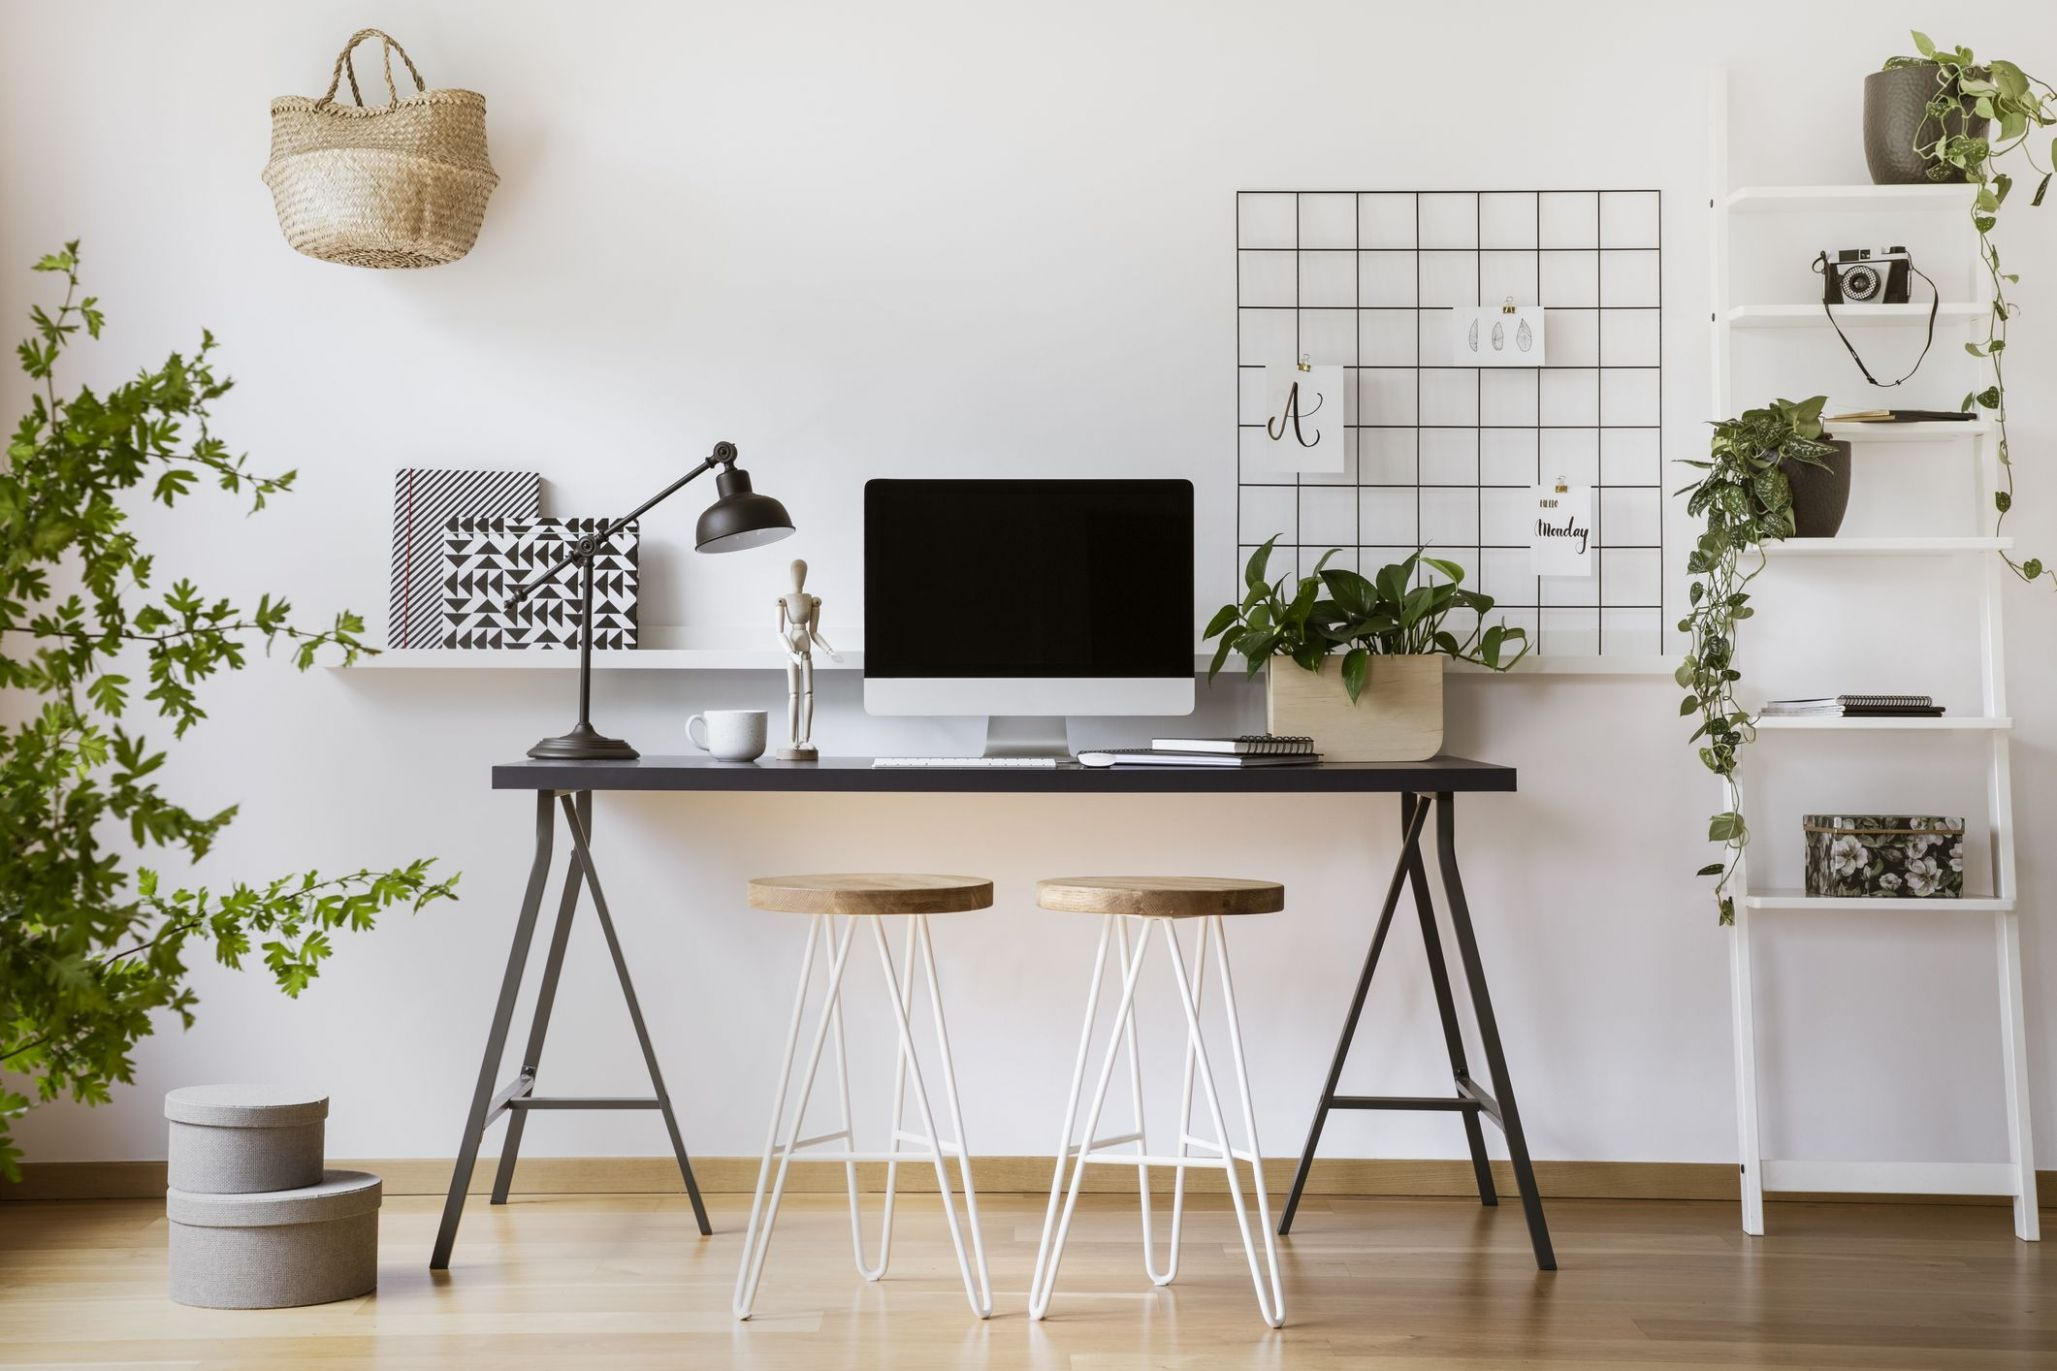 11 DIY Home Office Decor Ideas - Best Home Office Decor Projects